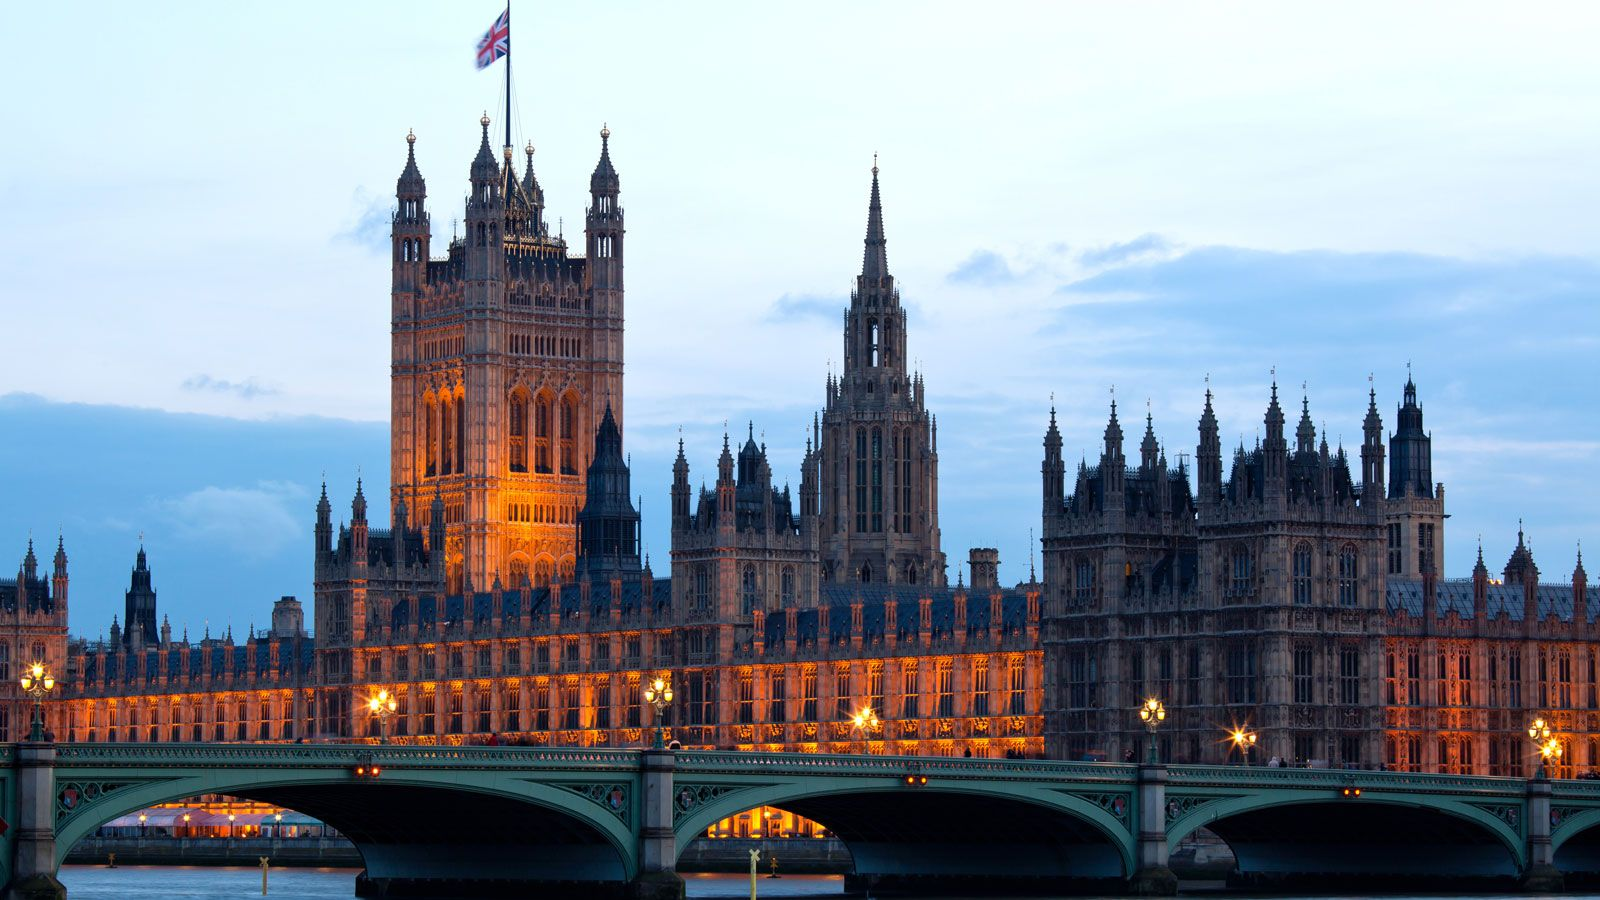 Palace of Westminster. London, England. Nearest airport: London Heathrow Airport (LHR). Way to get there: www.getgoing.com